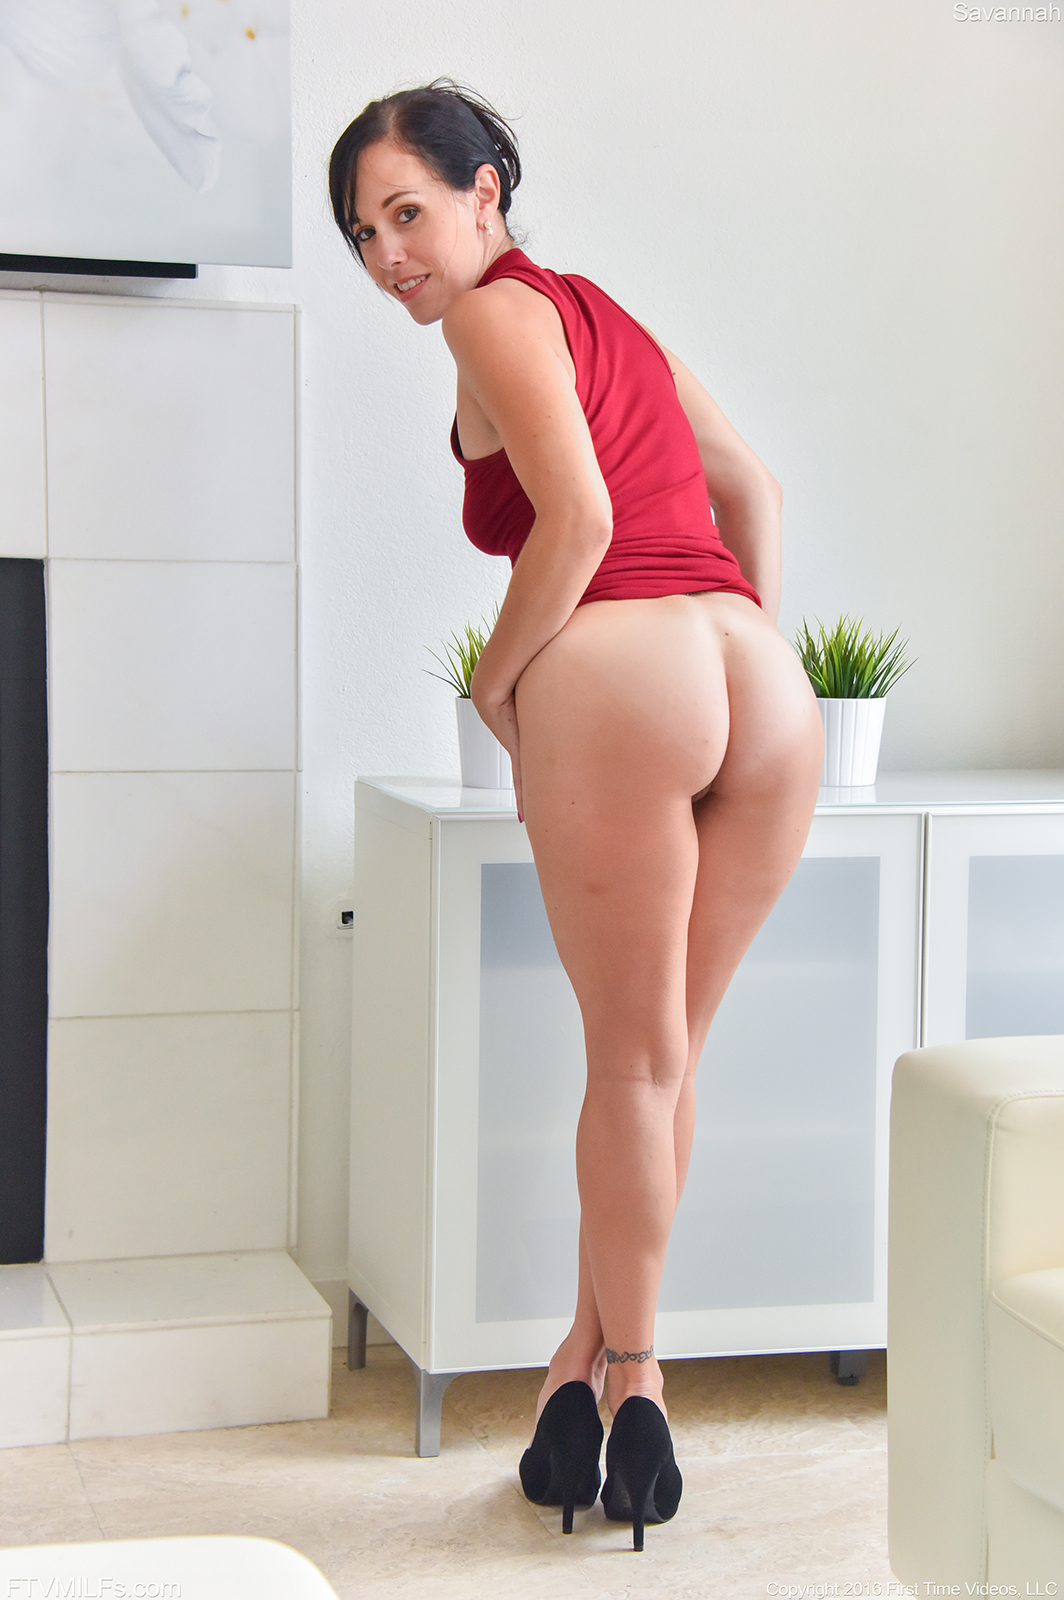 Ftv Milfs Savannah Lady In The Red Dress - Ftvmilfscom-3704